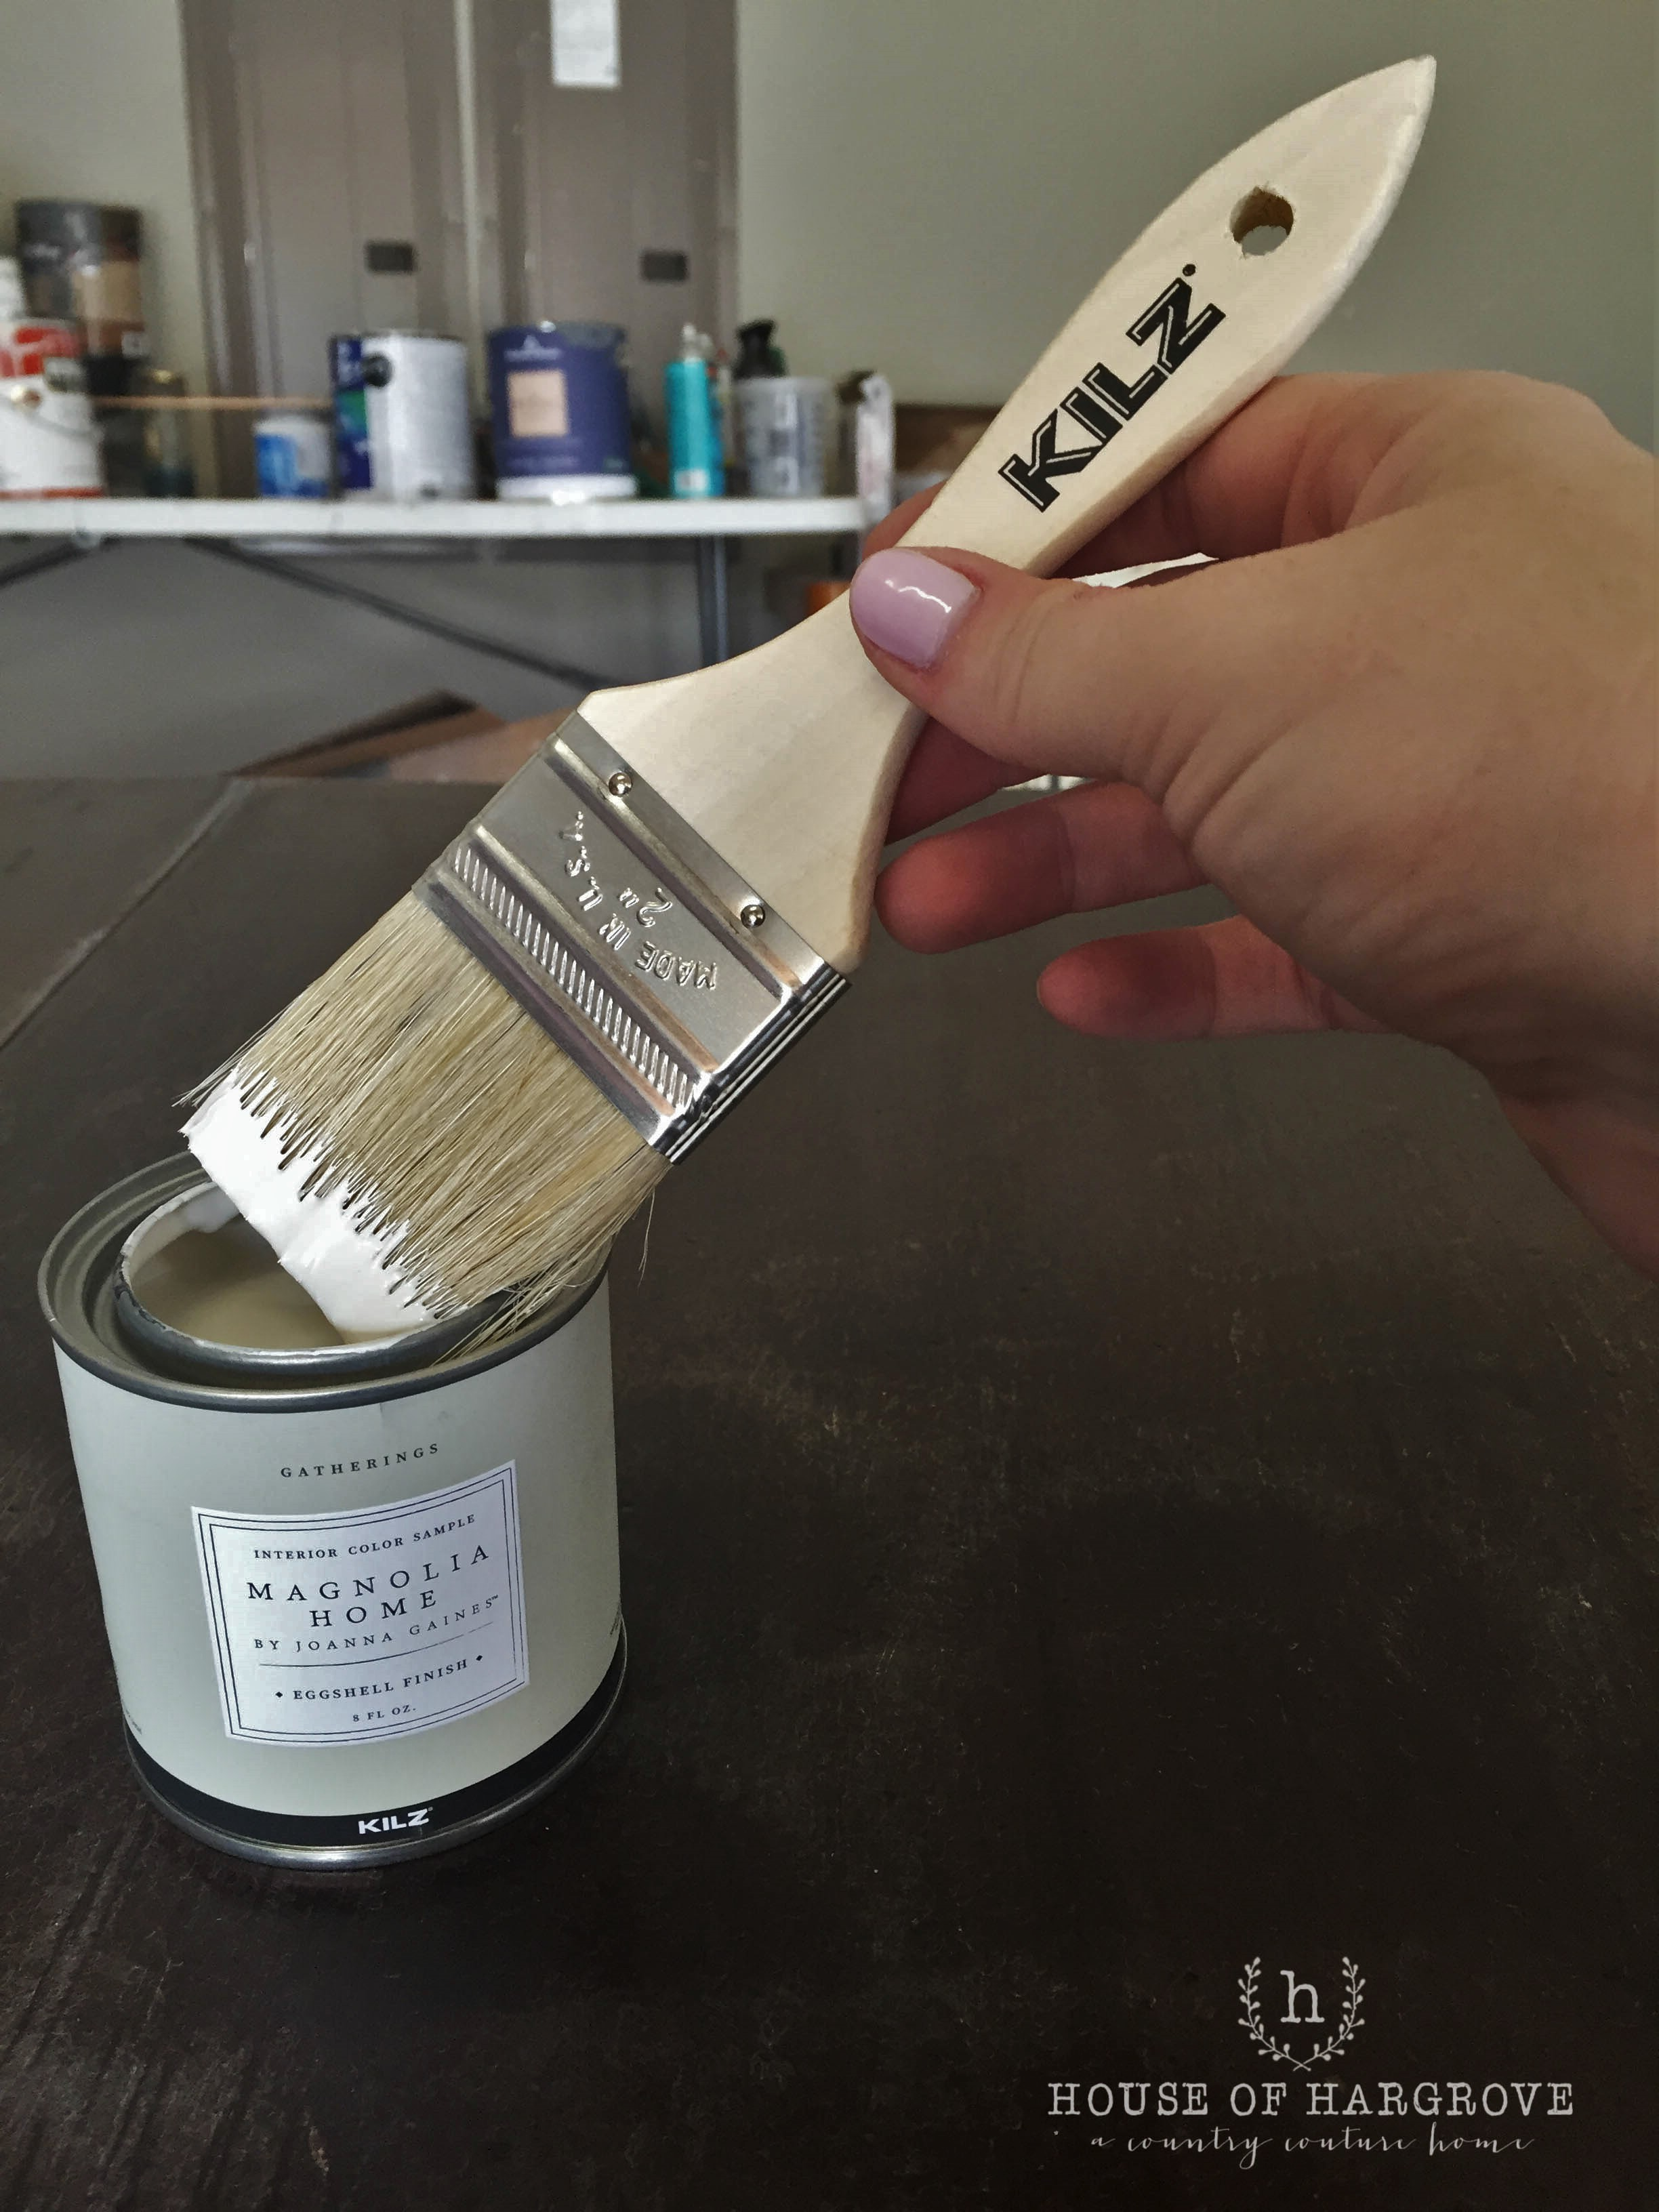 Magnolia Home Paint (16)